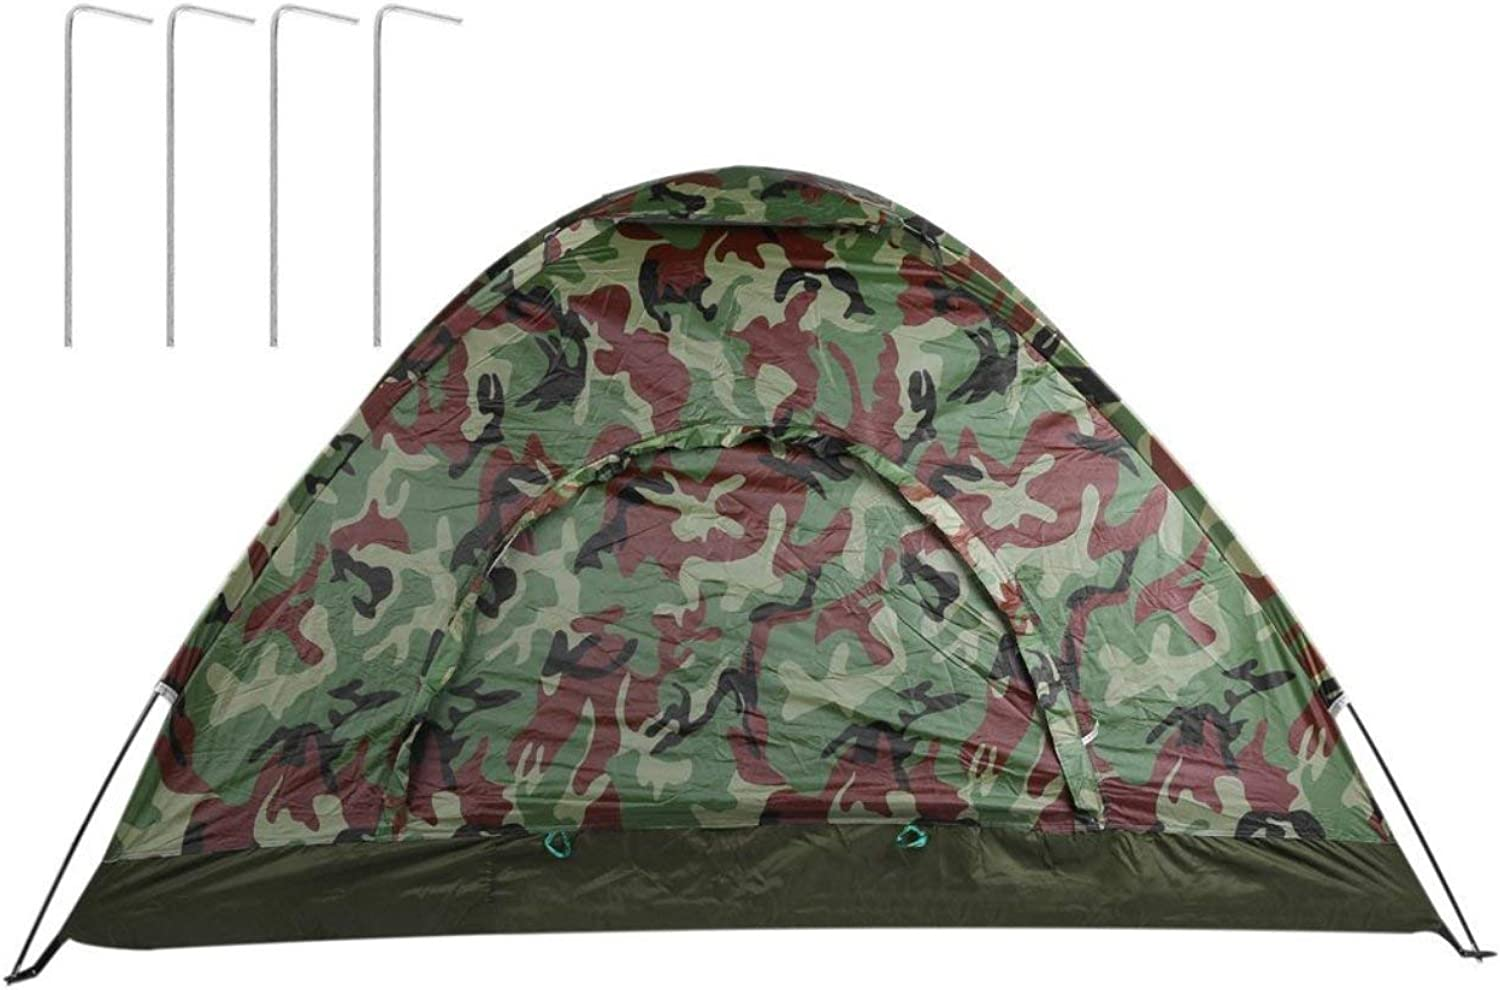 Liobaba Single Layer Camping Tent Camouflage Waterproof Fishing Hunting Tent Wigwam